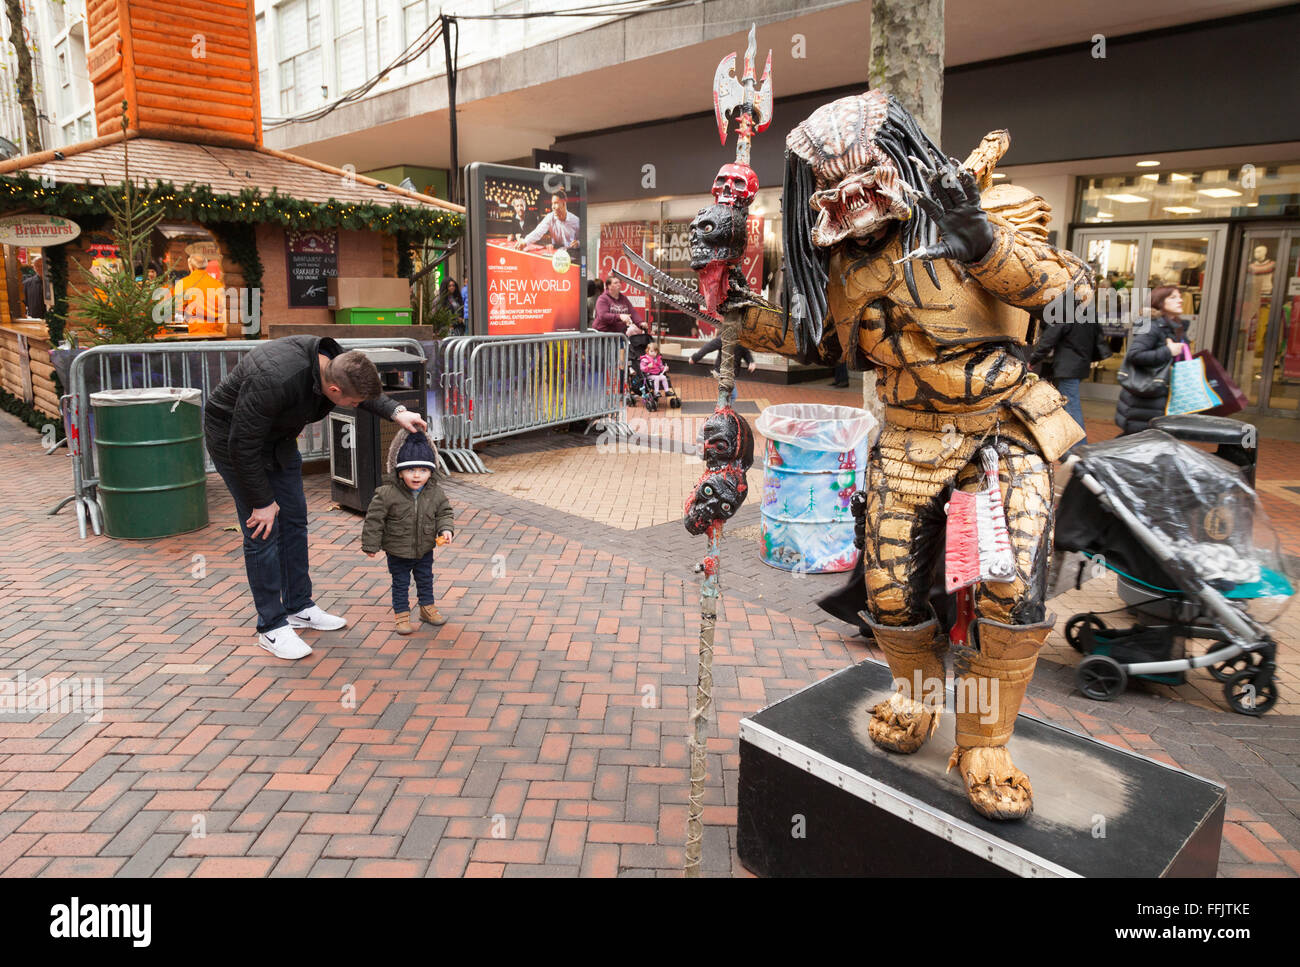 Artiste de rue dans un costume d'alien Predator, New Street, Birmingham UK Photo Stock